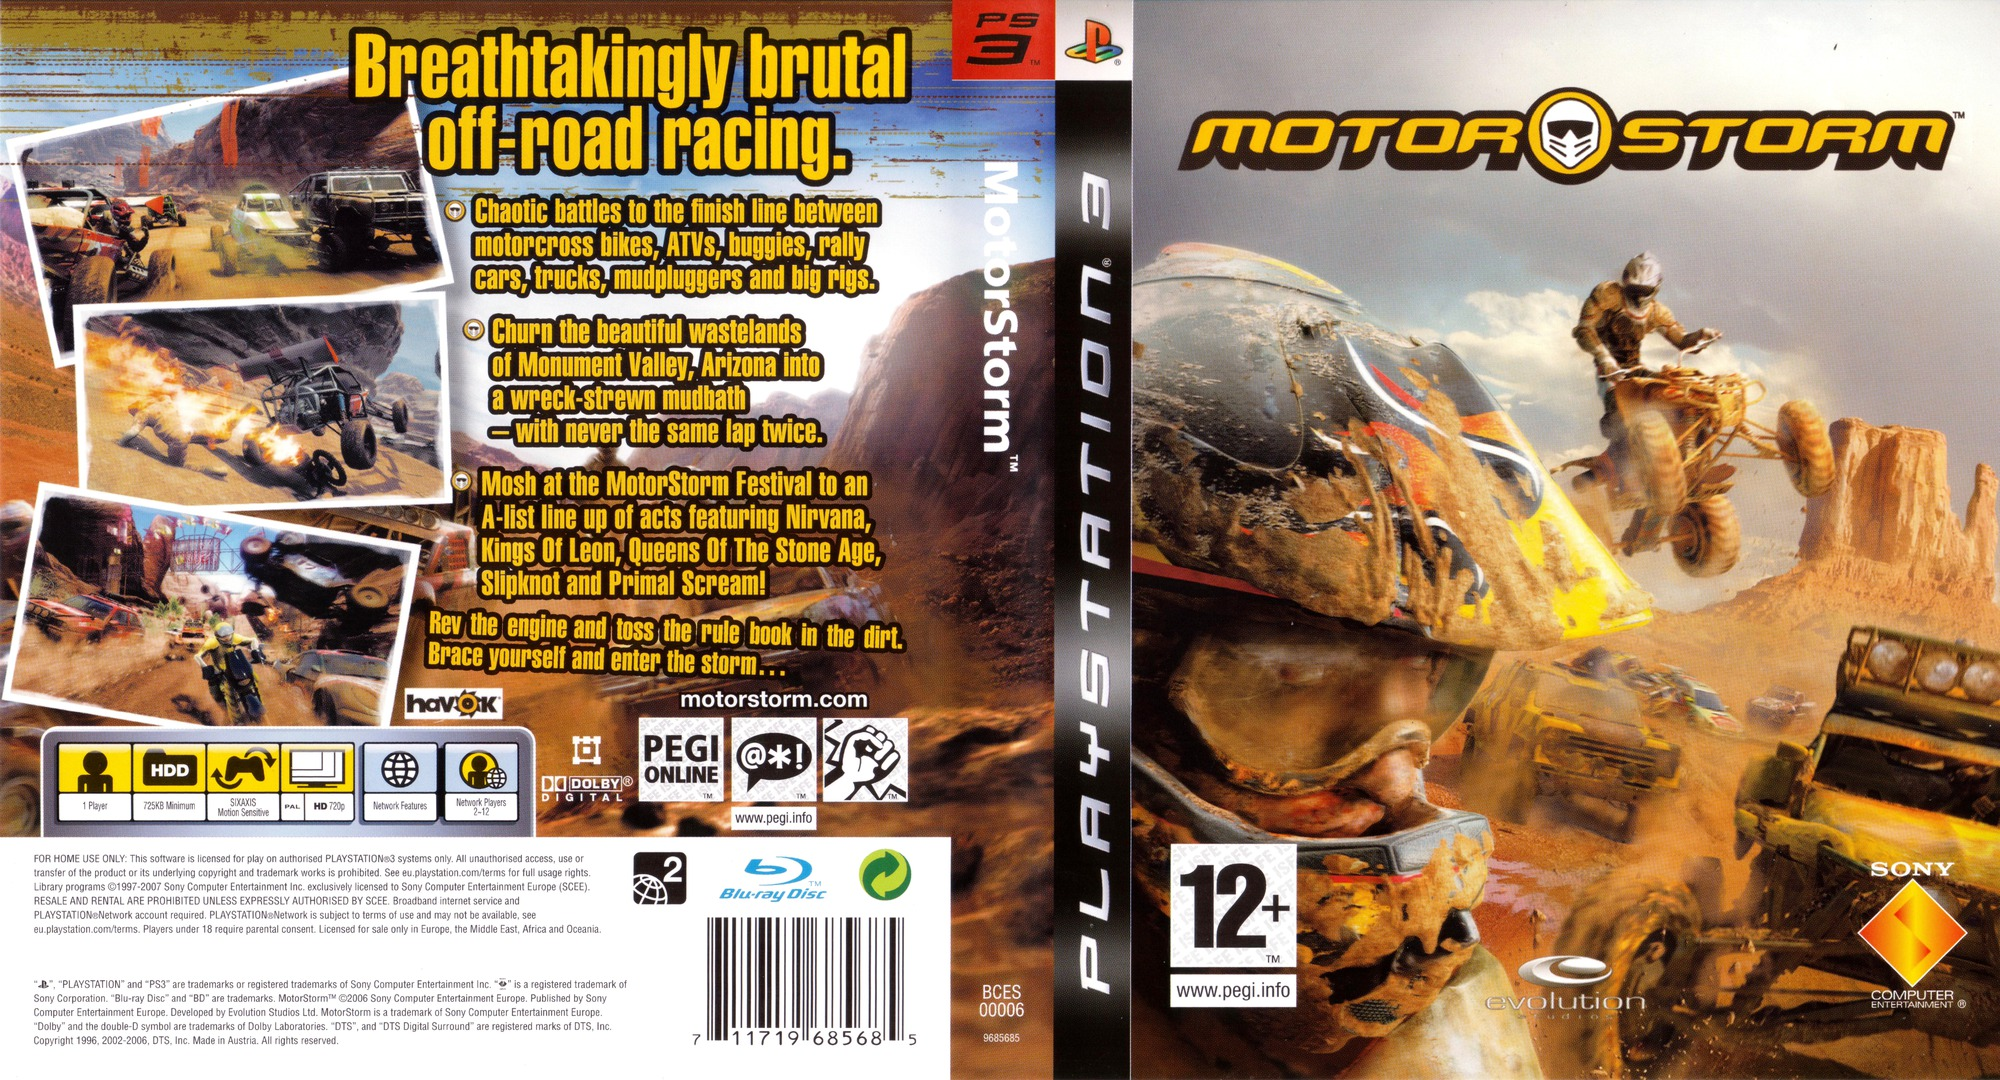 MotorStorm PS3 coverfullHQ (BCES00006)